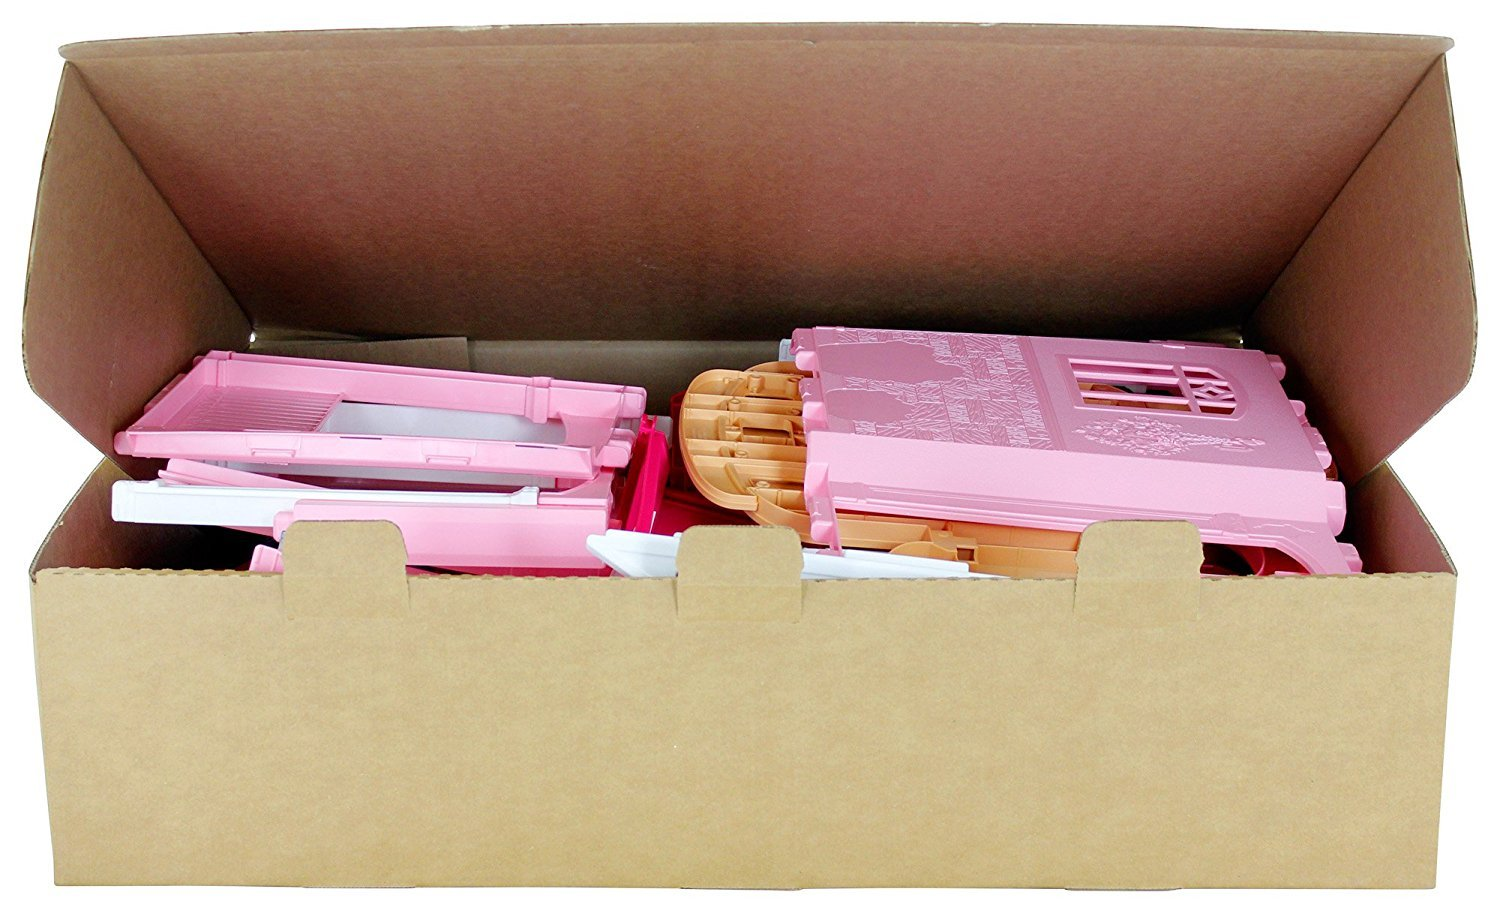 71fbBex9caL._SL1500_ amazon com barbie dreamhouse toys & games Barbie Dreamhouse at bayanpartner.co